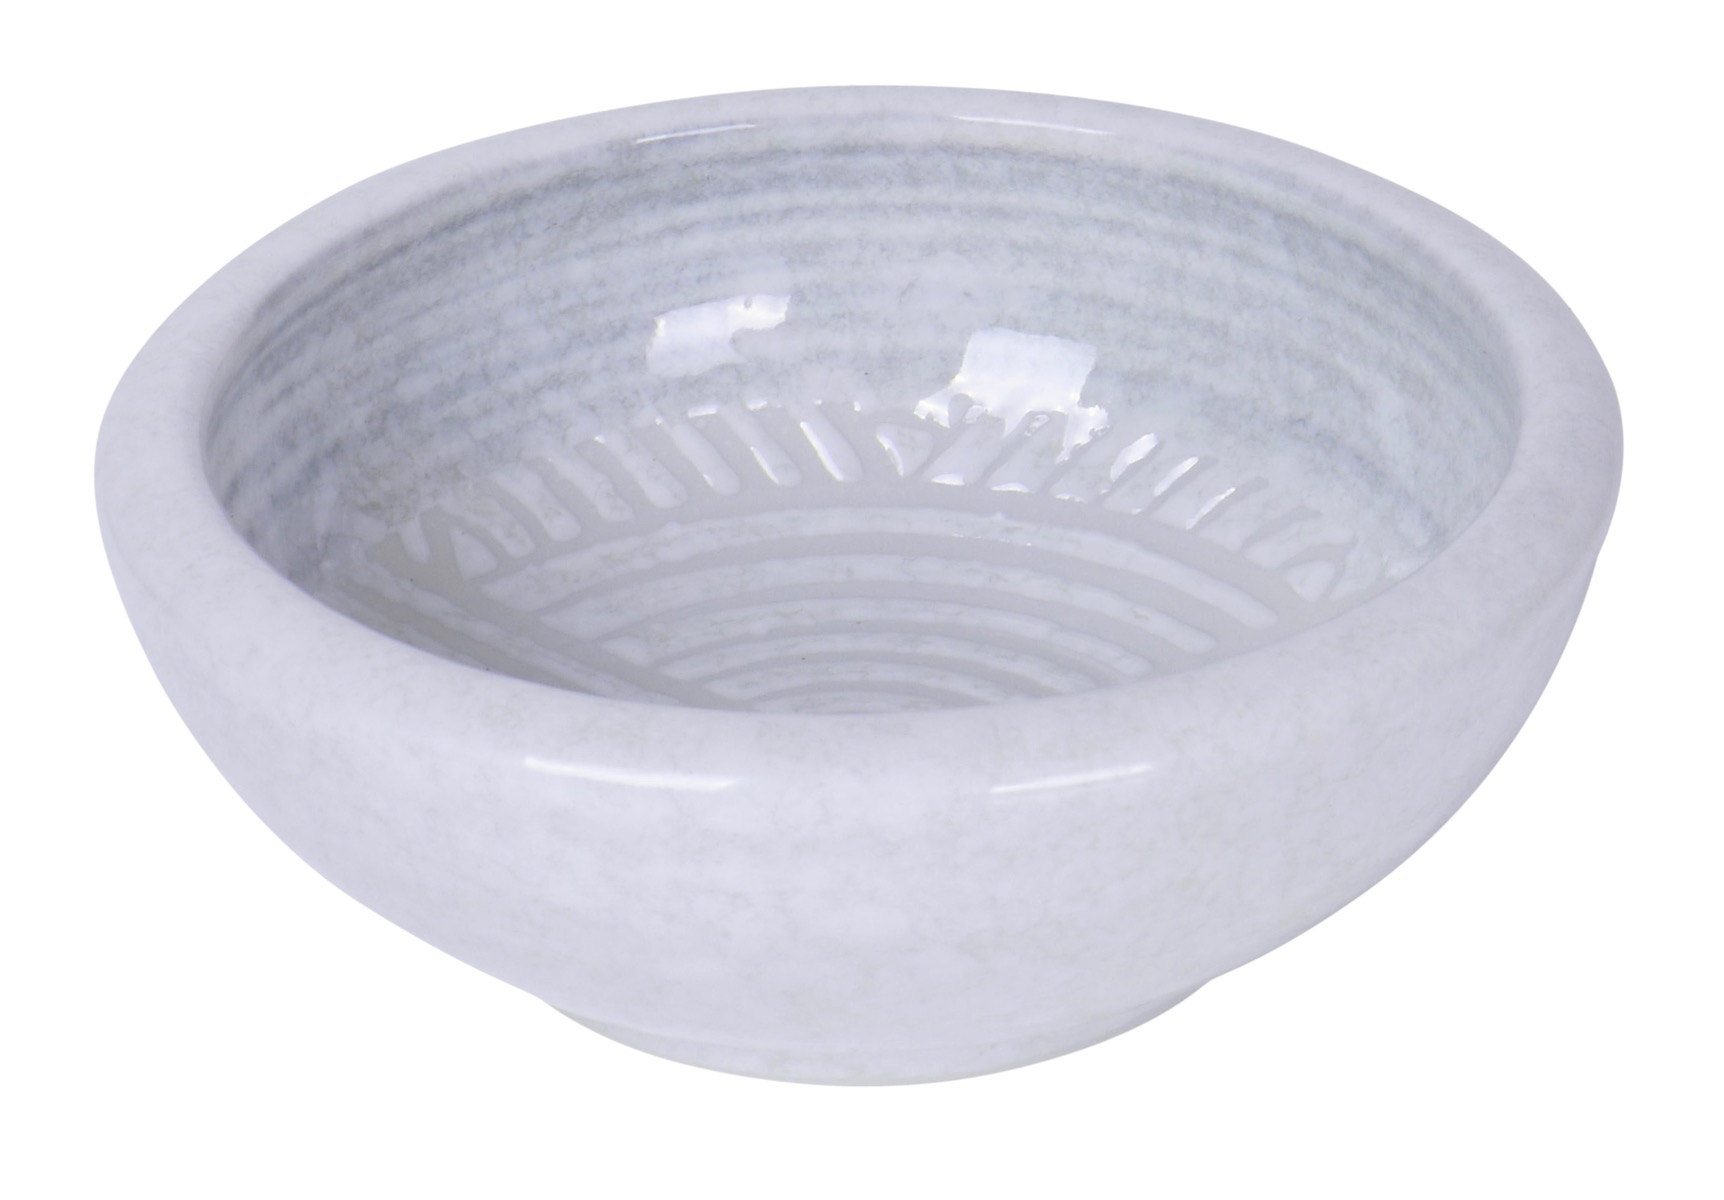 Image of White Porcelain Bowl with Rainbow Fan design 4-Inch